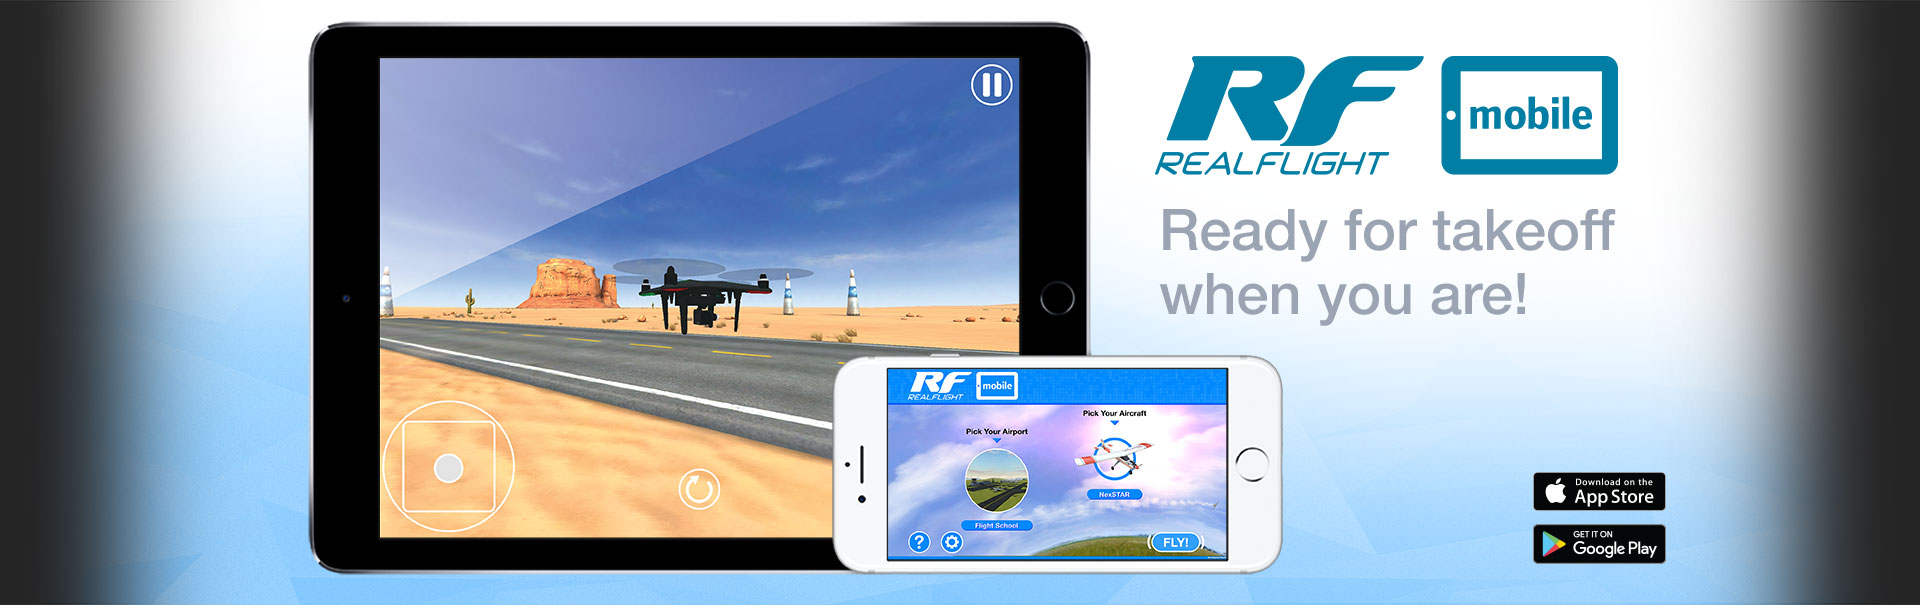 RealFlight Mobile: Ready for takeoff when you are!